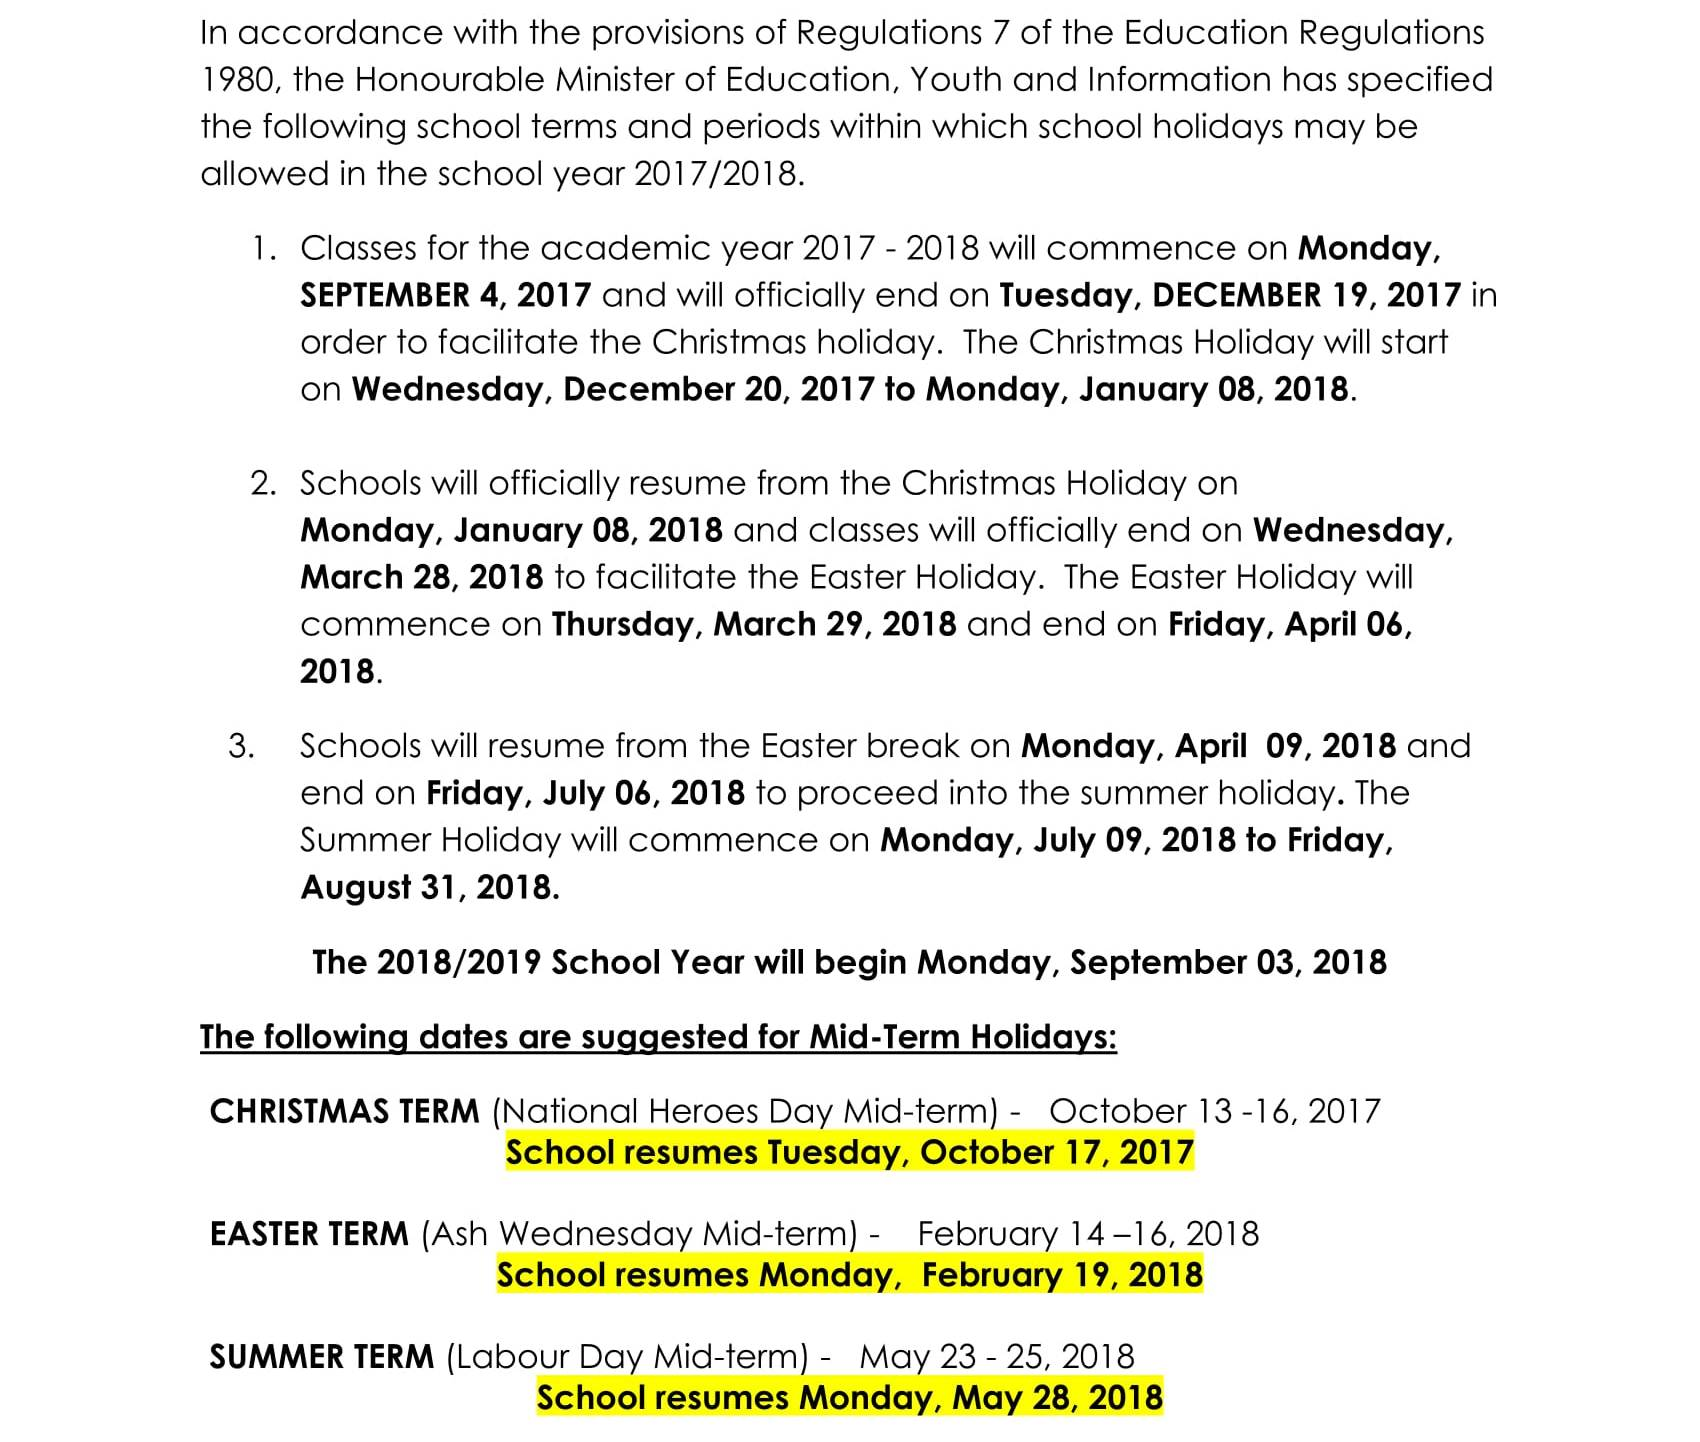 jamaica calendar of school terms holidays for the academic year